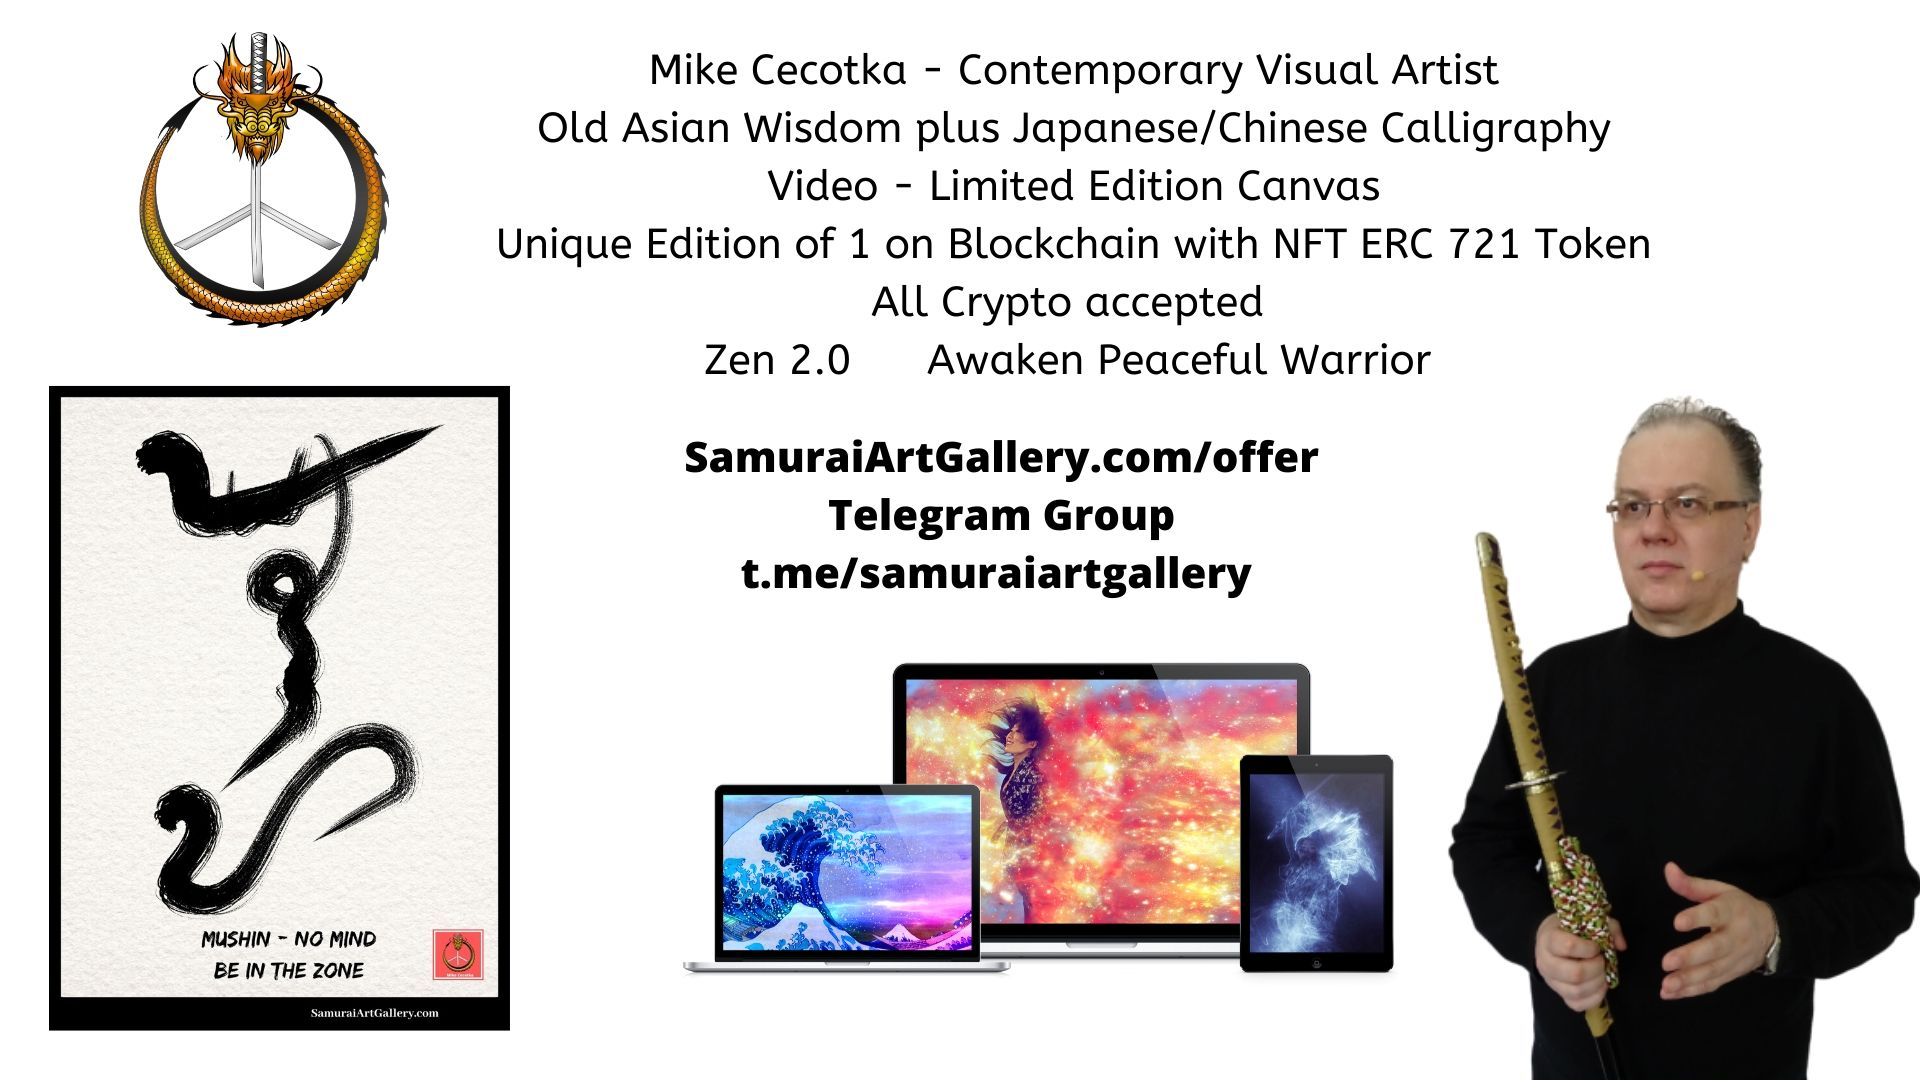 JapaneseChinese Calligraphy and Crypto Art  Mike Cecotka  SamuraiArtGallerycom